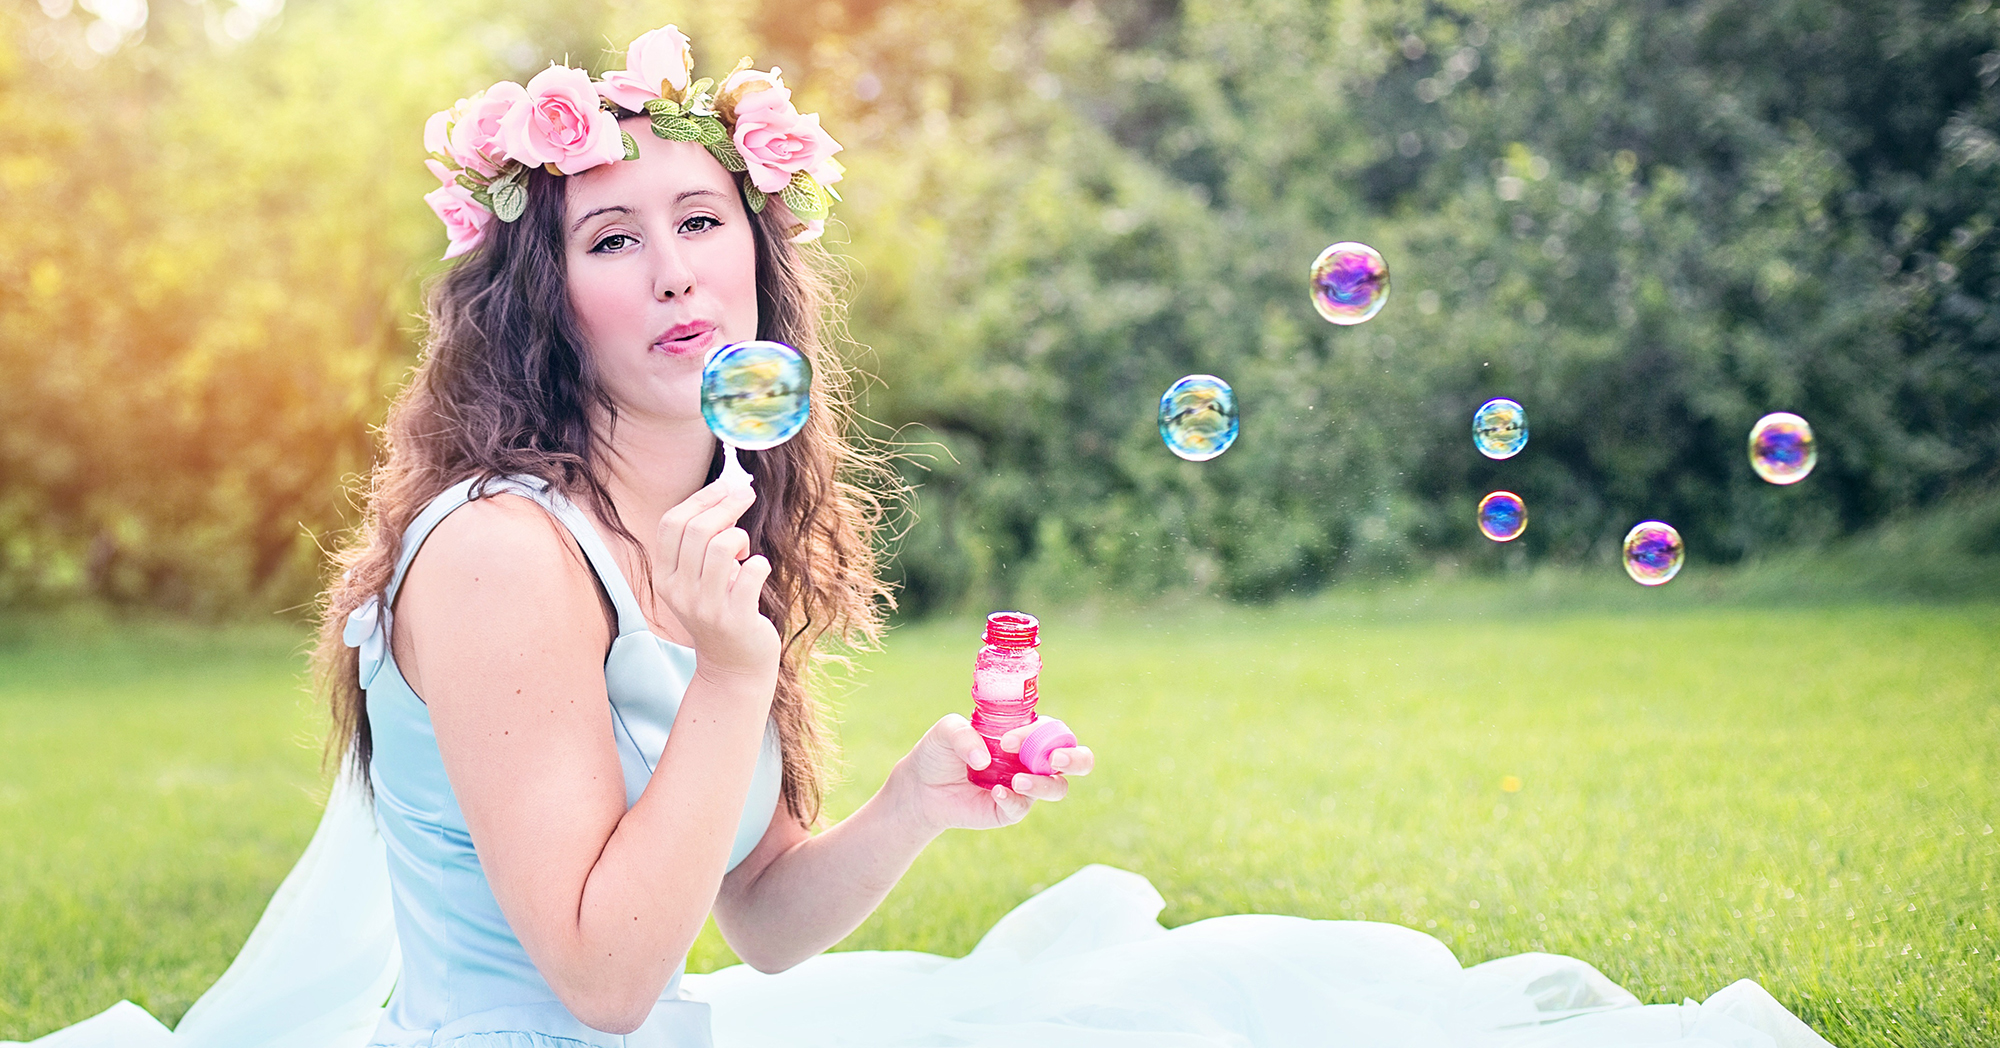 woman-blowing-bubbles-young-sitting